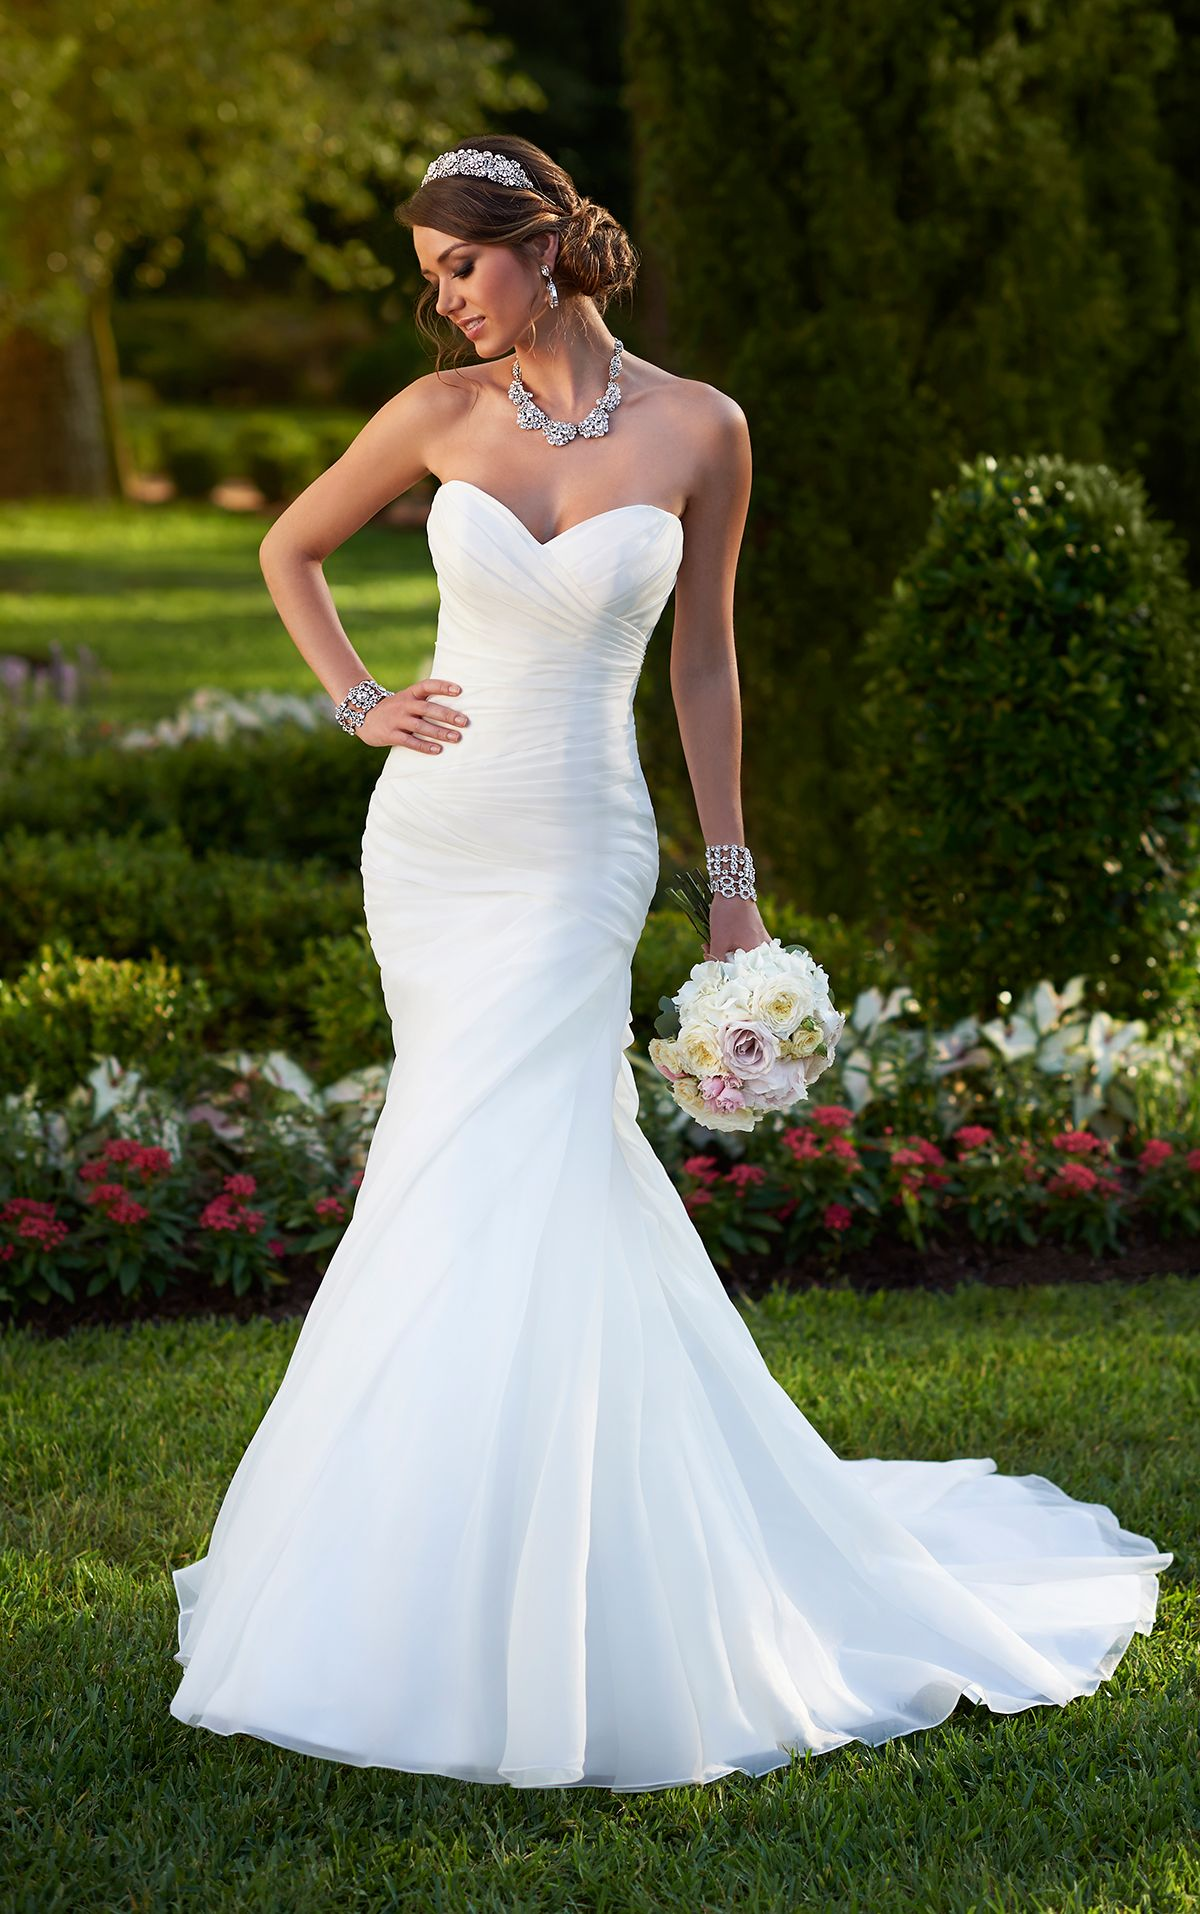 d83034306ef Look through sweetheart neckline strapless fit-and-flare wedding gowns  featuring an asymmetrical ruched bodice and skirt with a full skirt just  below the ...